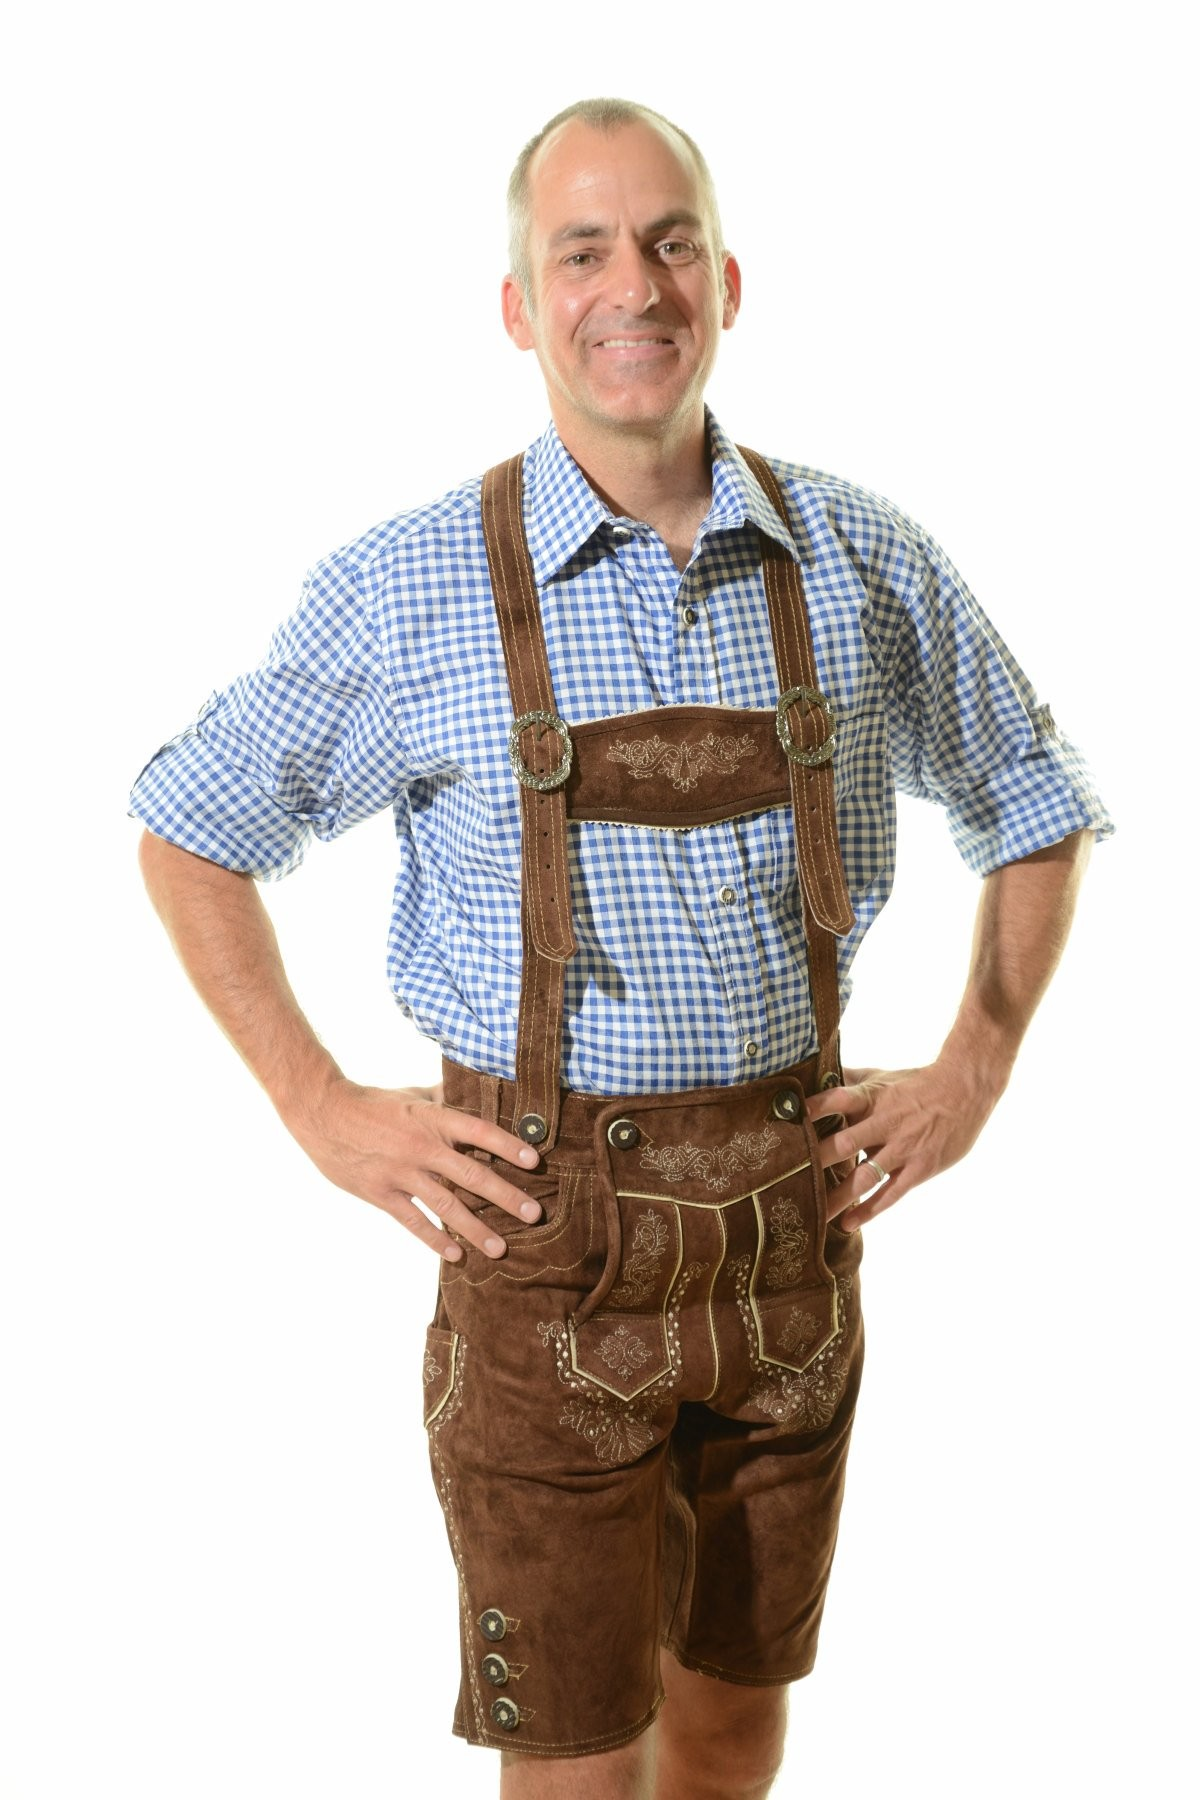 bergkristall lederhosen oktoberfest outfit oktoberfest. Black Bedroom Furniture Sets. Home Design Ideas